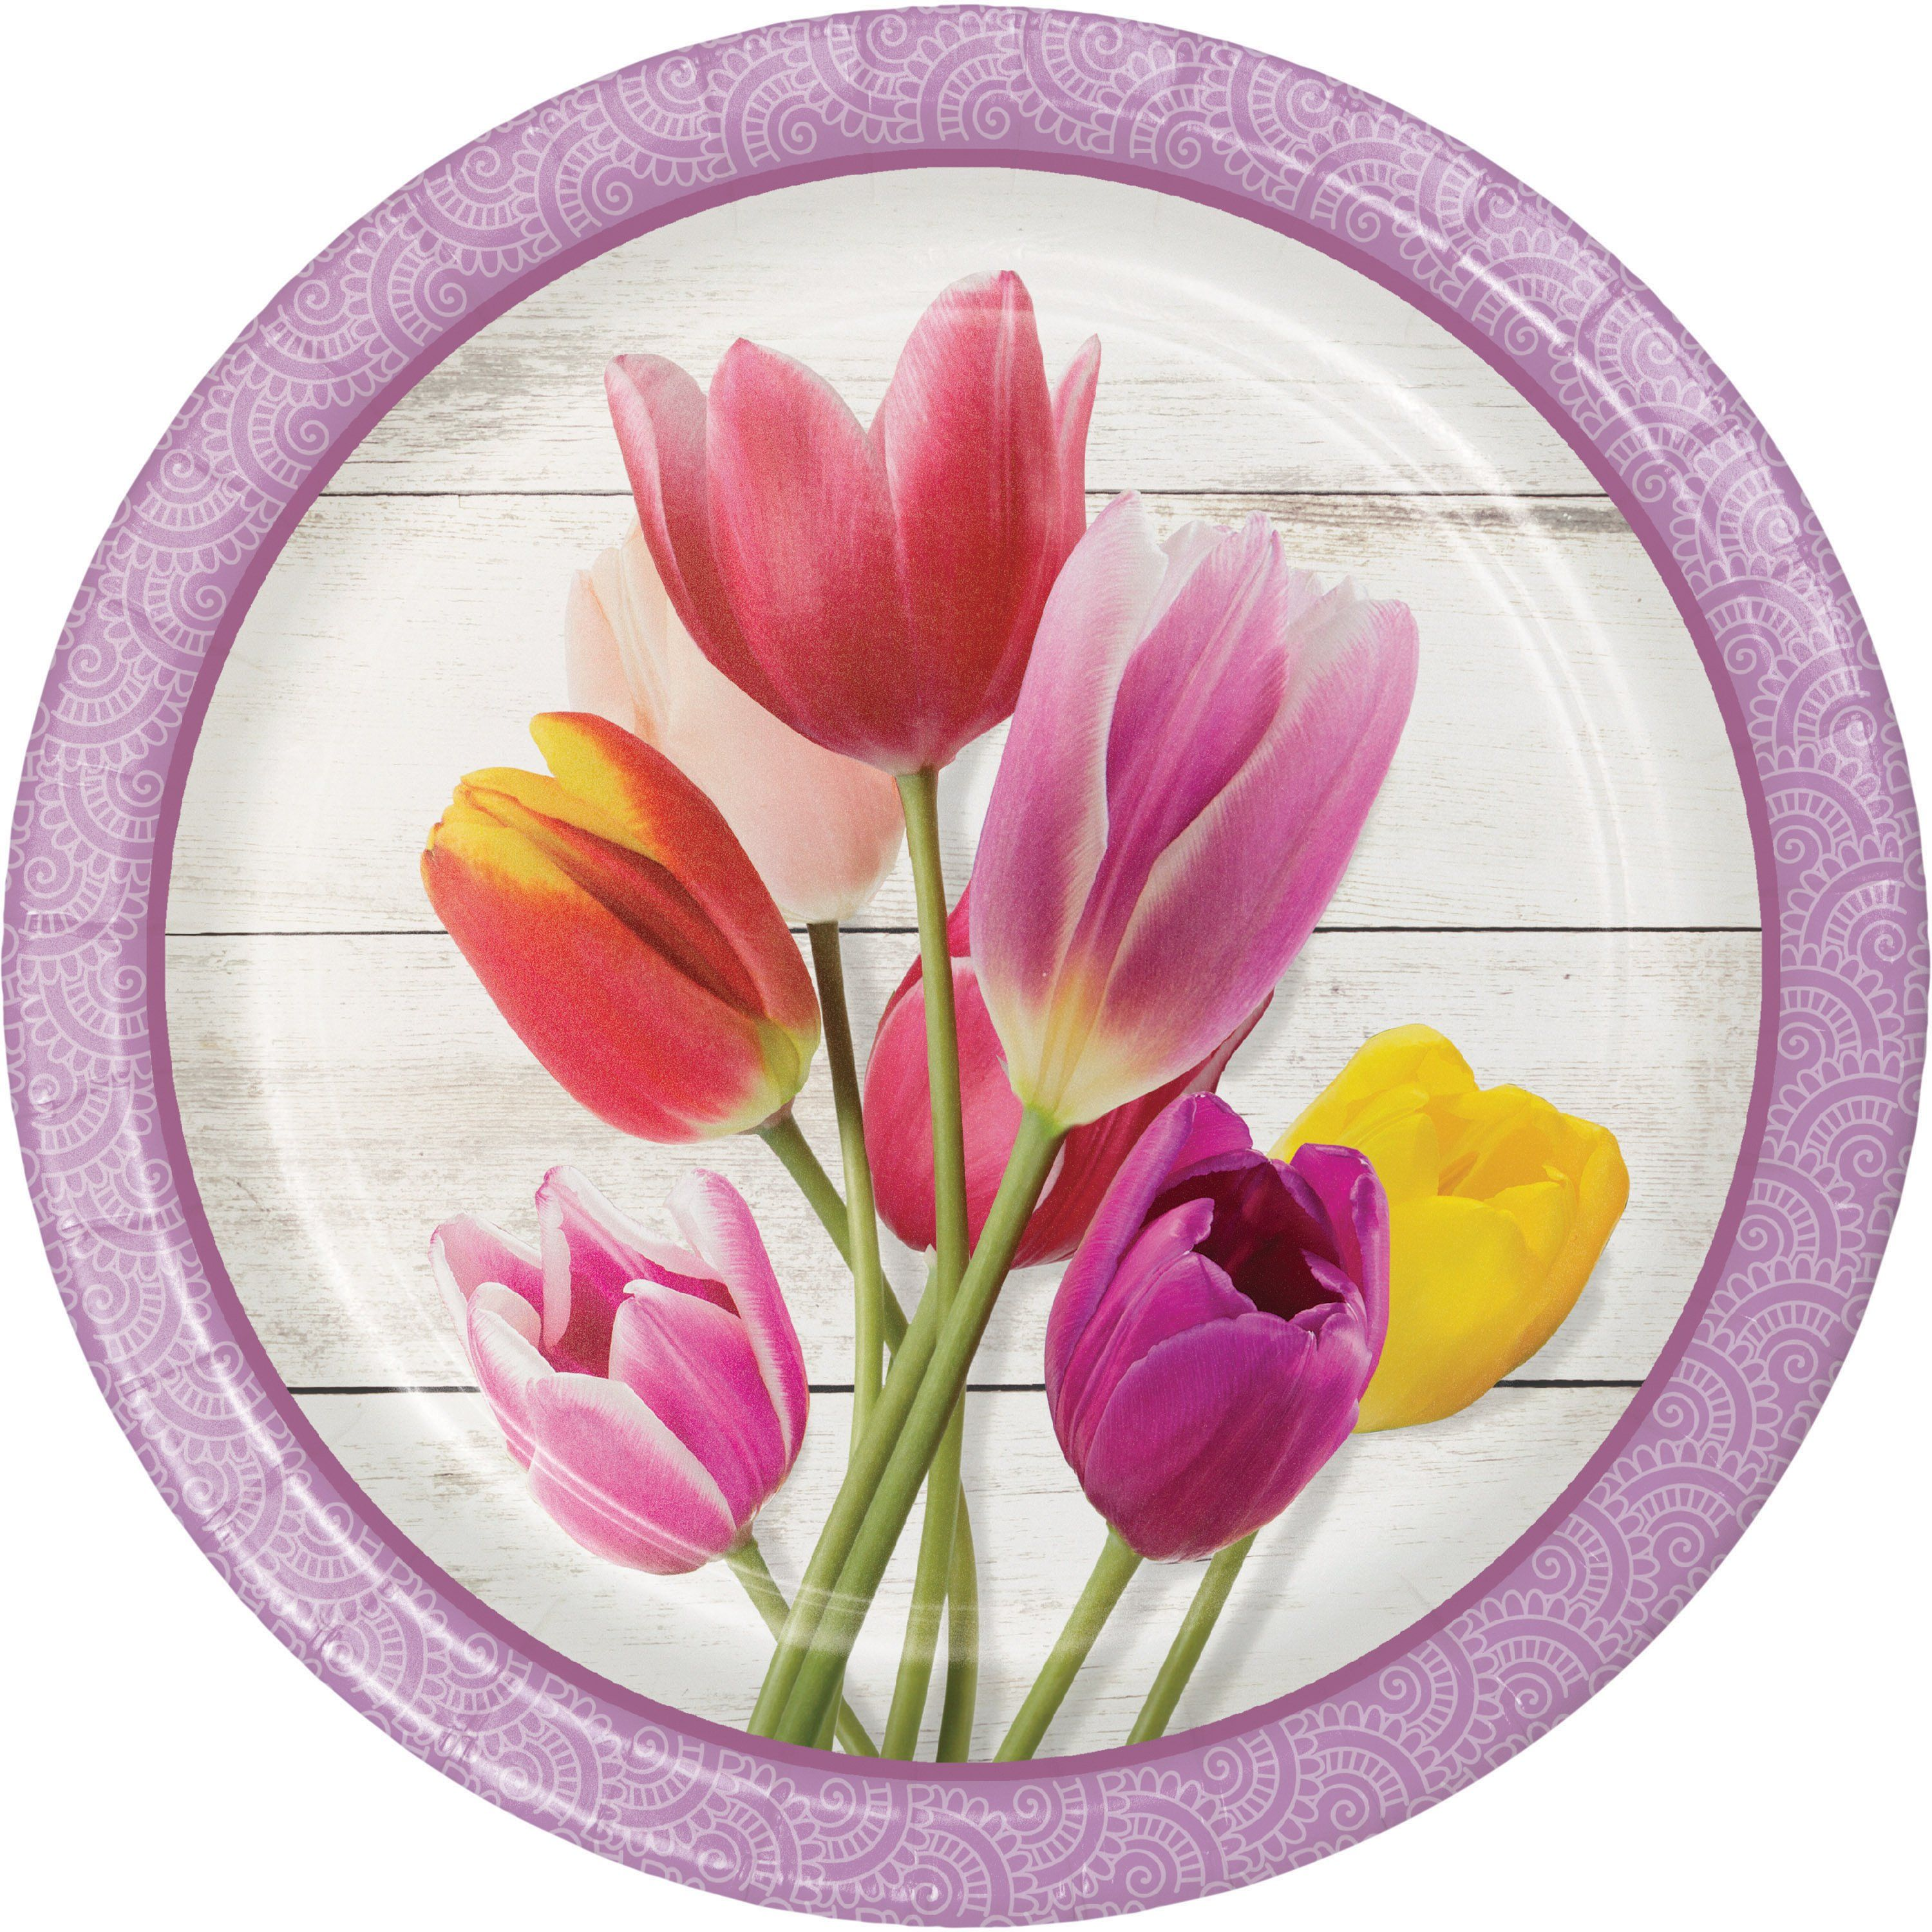 Beautiful Blossoms 8 3 4 Dia Paper Dinner Plate Case Of 96